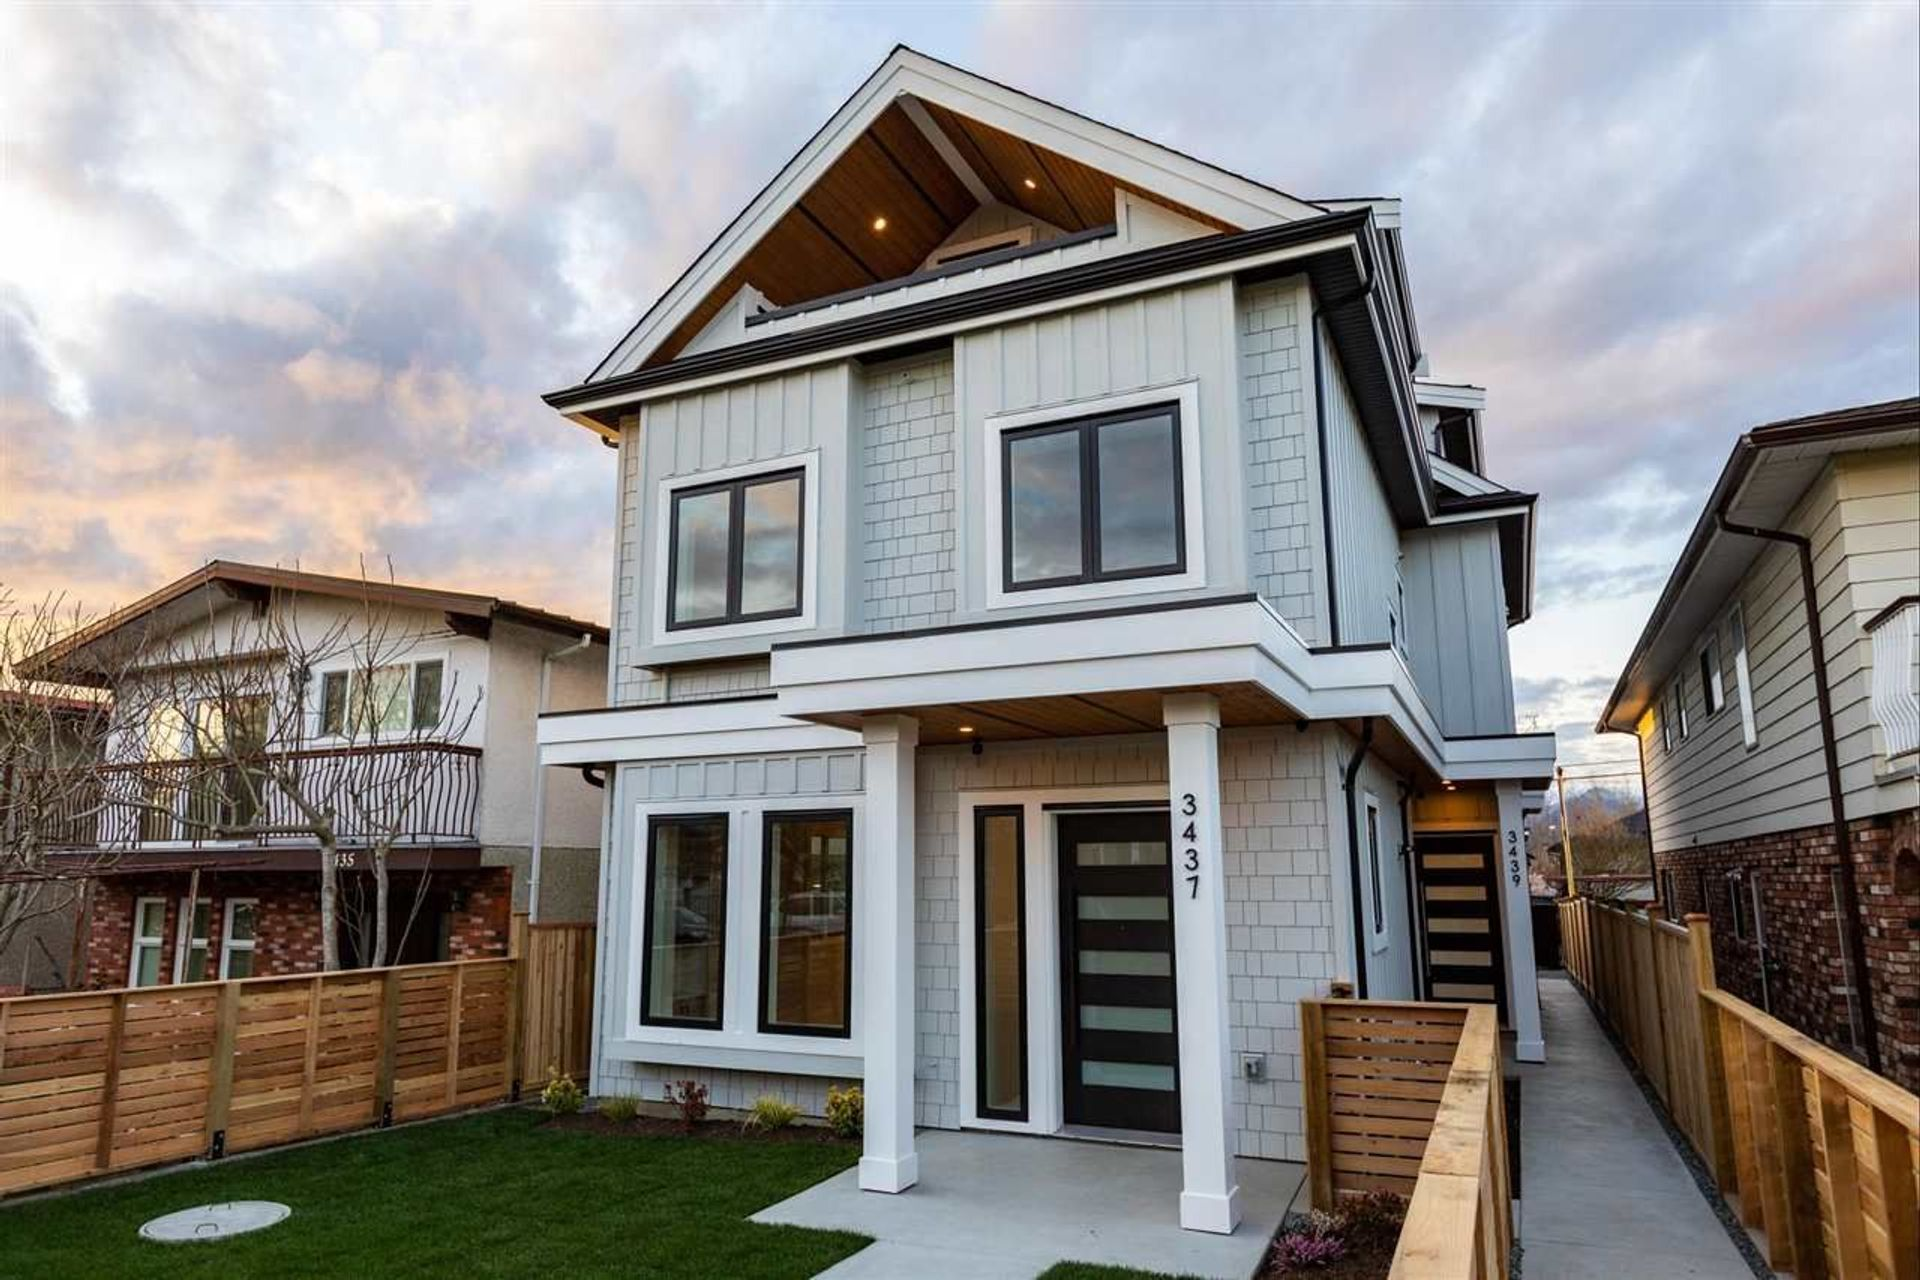 3439-e-24th-avenue-renfrew-heights-vancouver-east-01 at 3439 E 24th Avenue, Renfrew Heights, Vancouver East